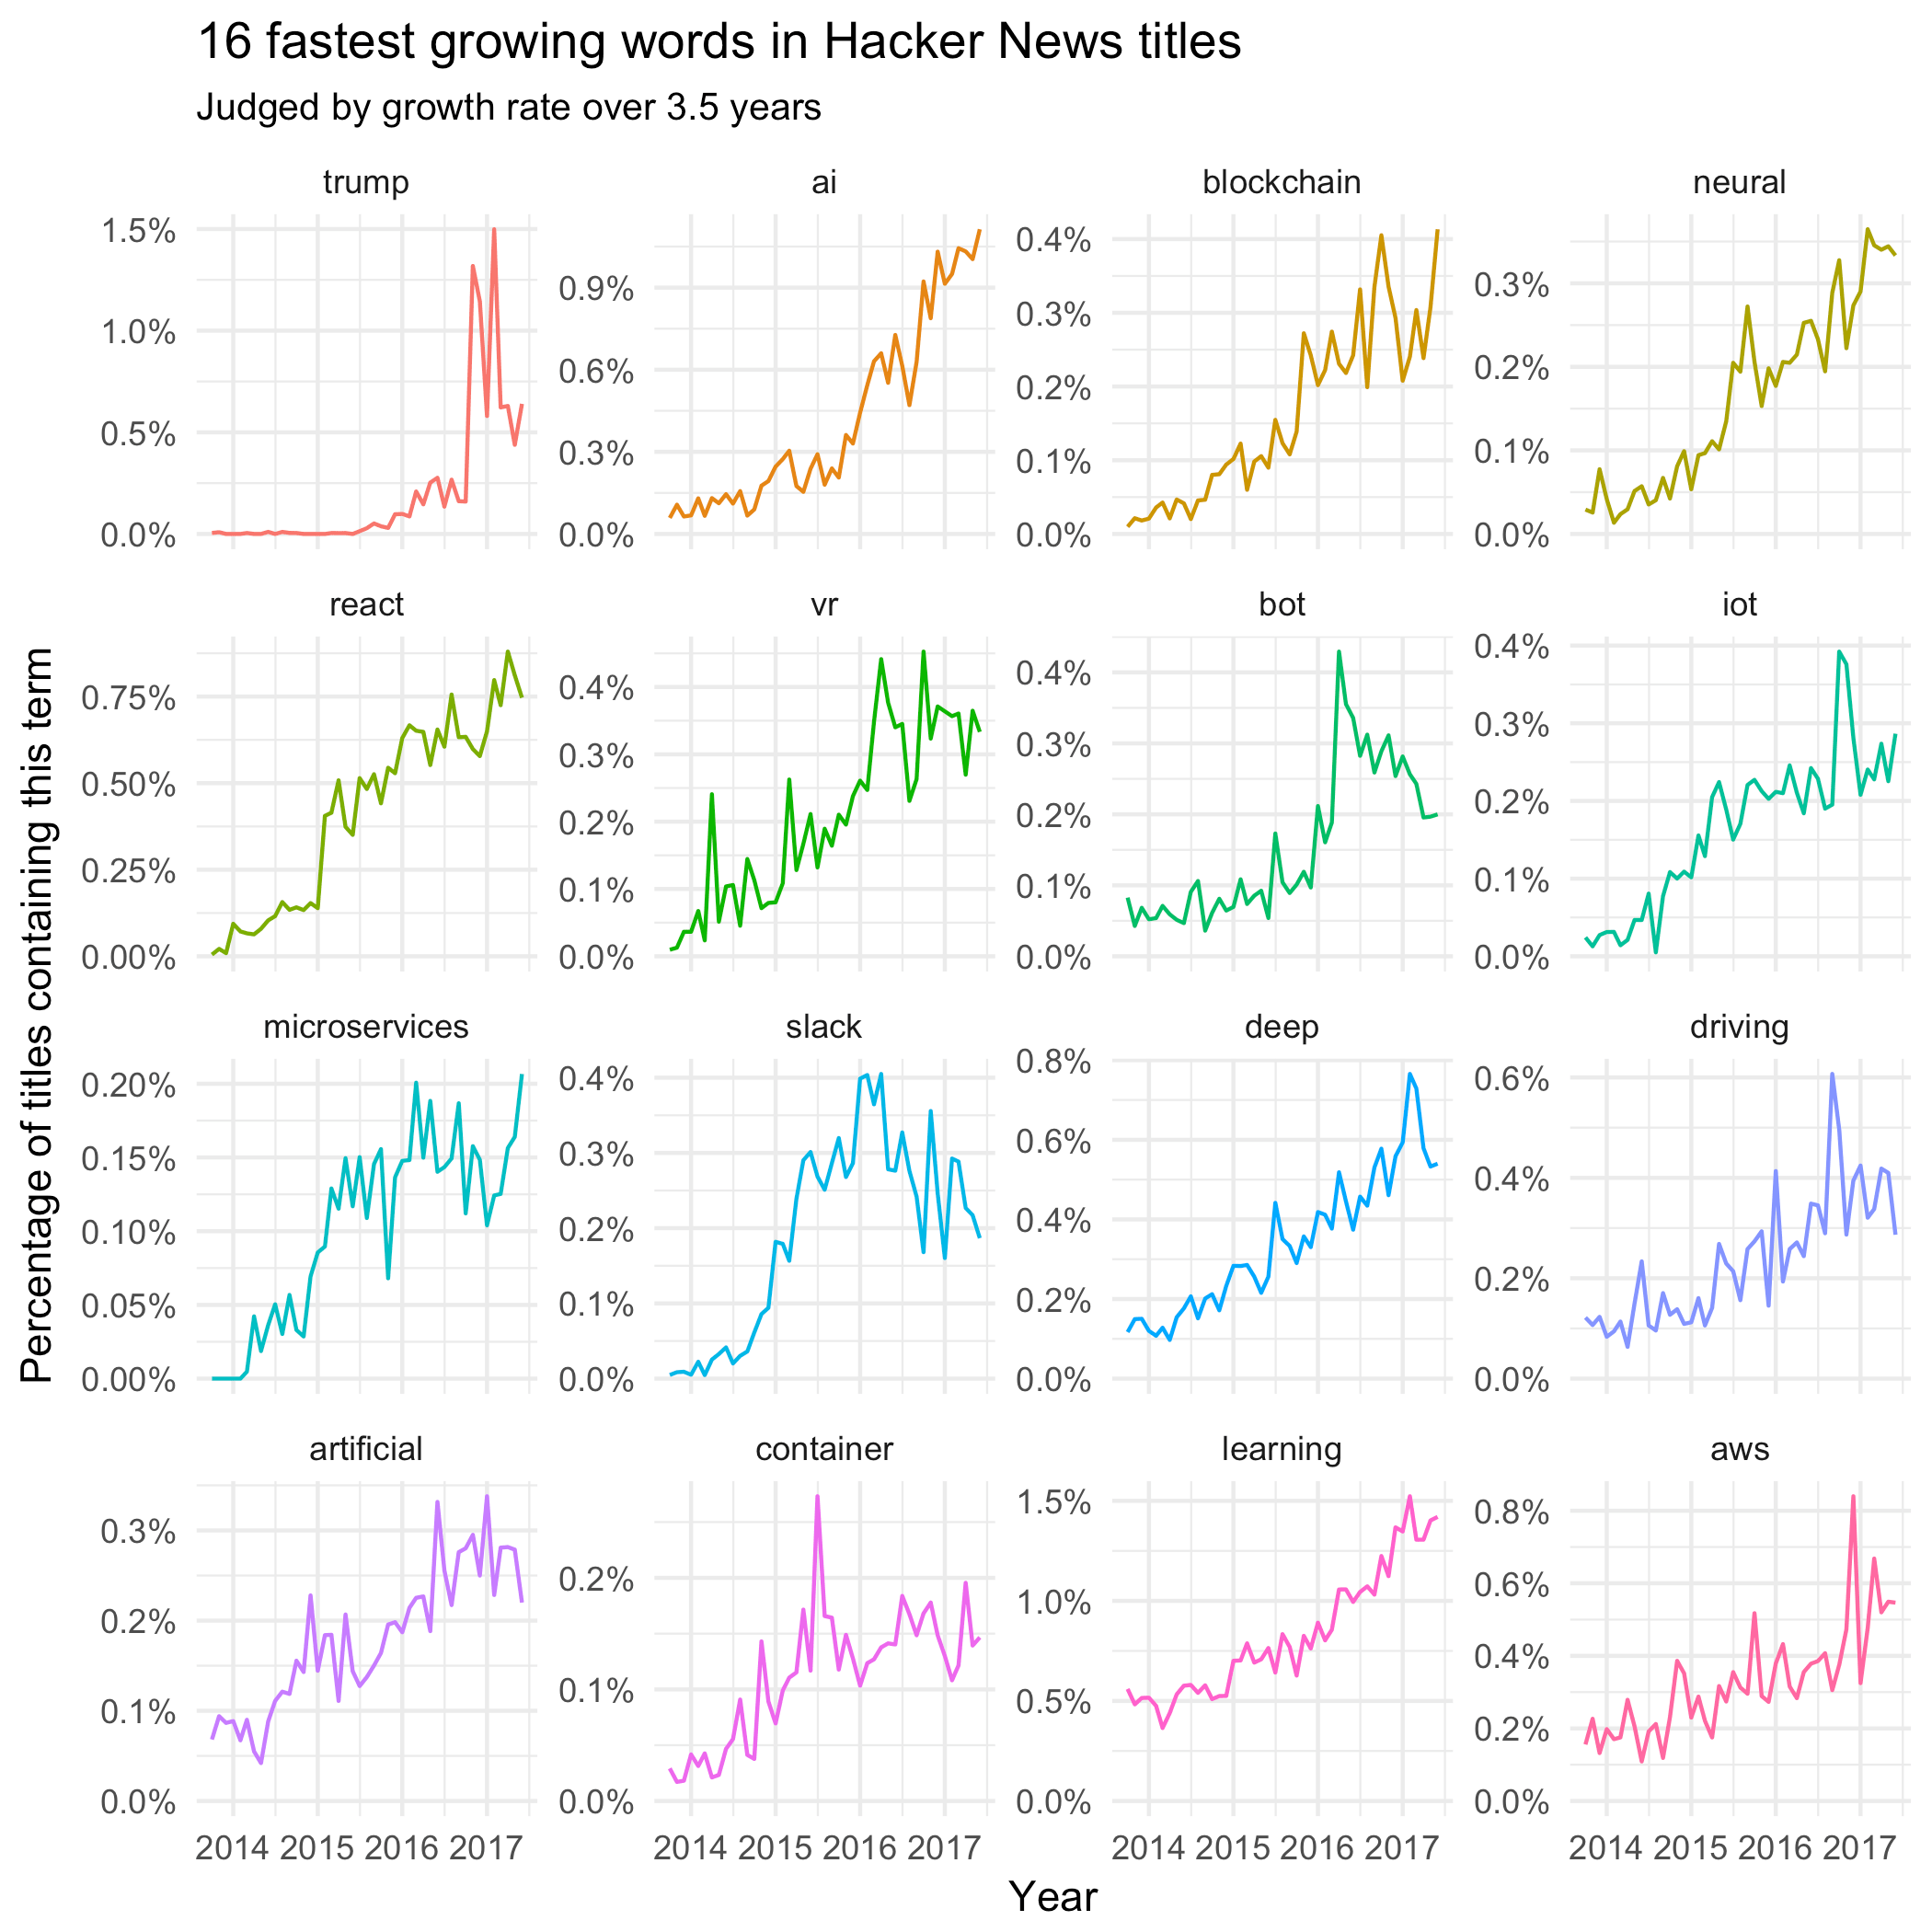 Words growing or shrinking in Hacker News titles: a tidy analysis